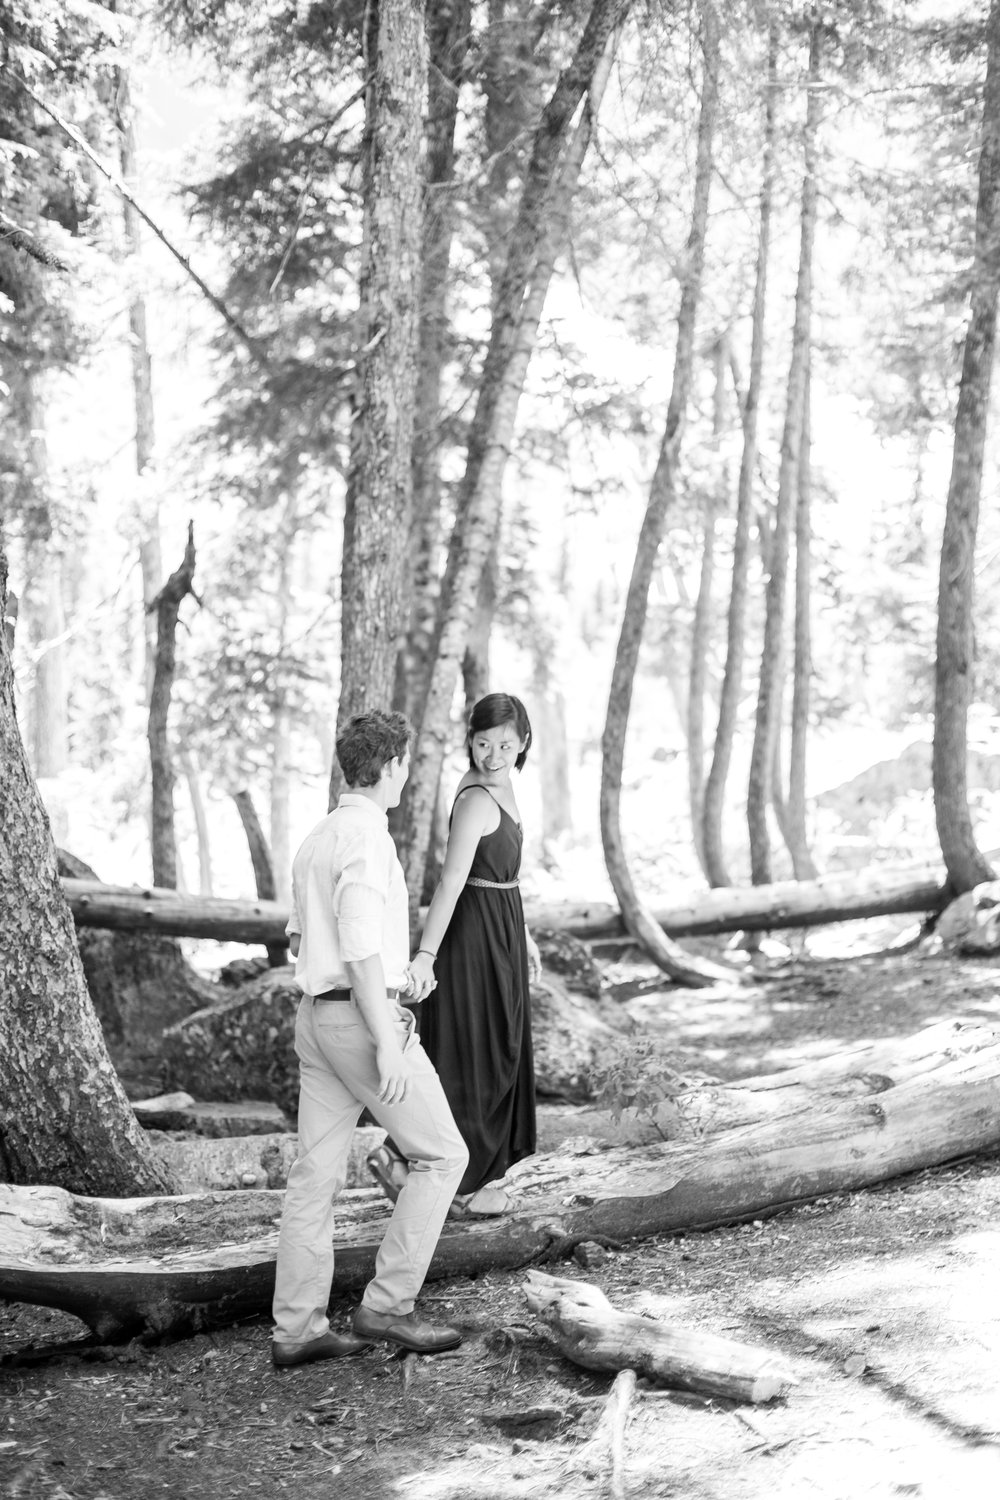 nicole-daacke-photography-hiking-engagement-session-in-snoqualmie-pass-washington-wedding-photographer-seattle-elopement-photography-adventurous-hiking-photos-heather-lake-washington-trails-16.jpg